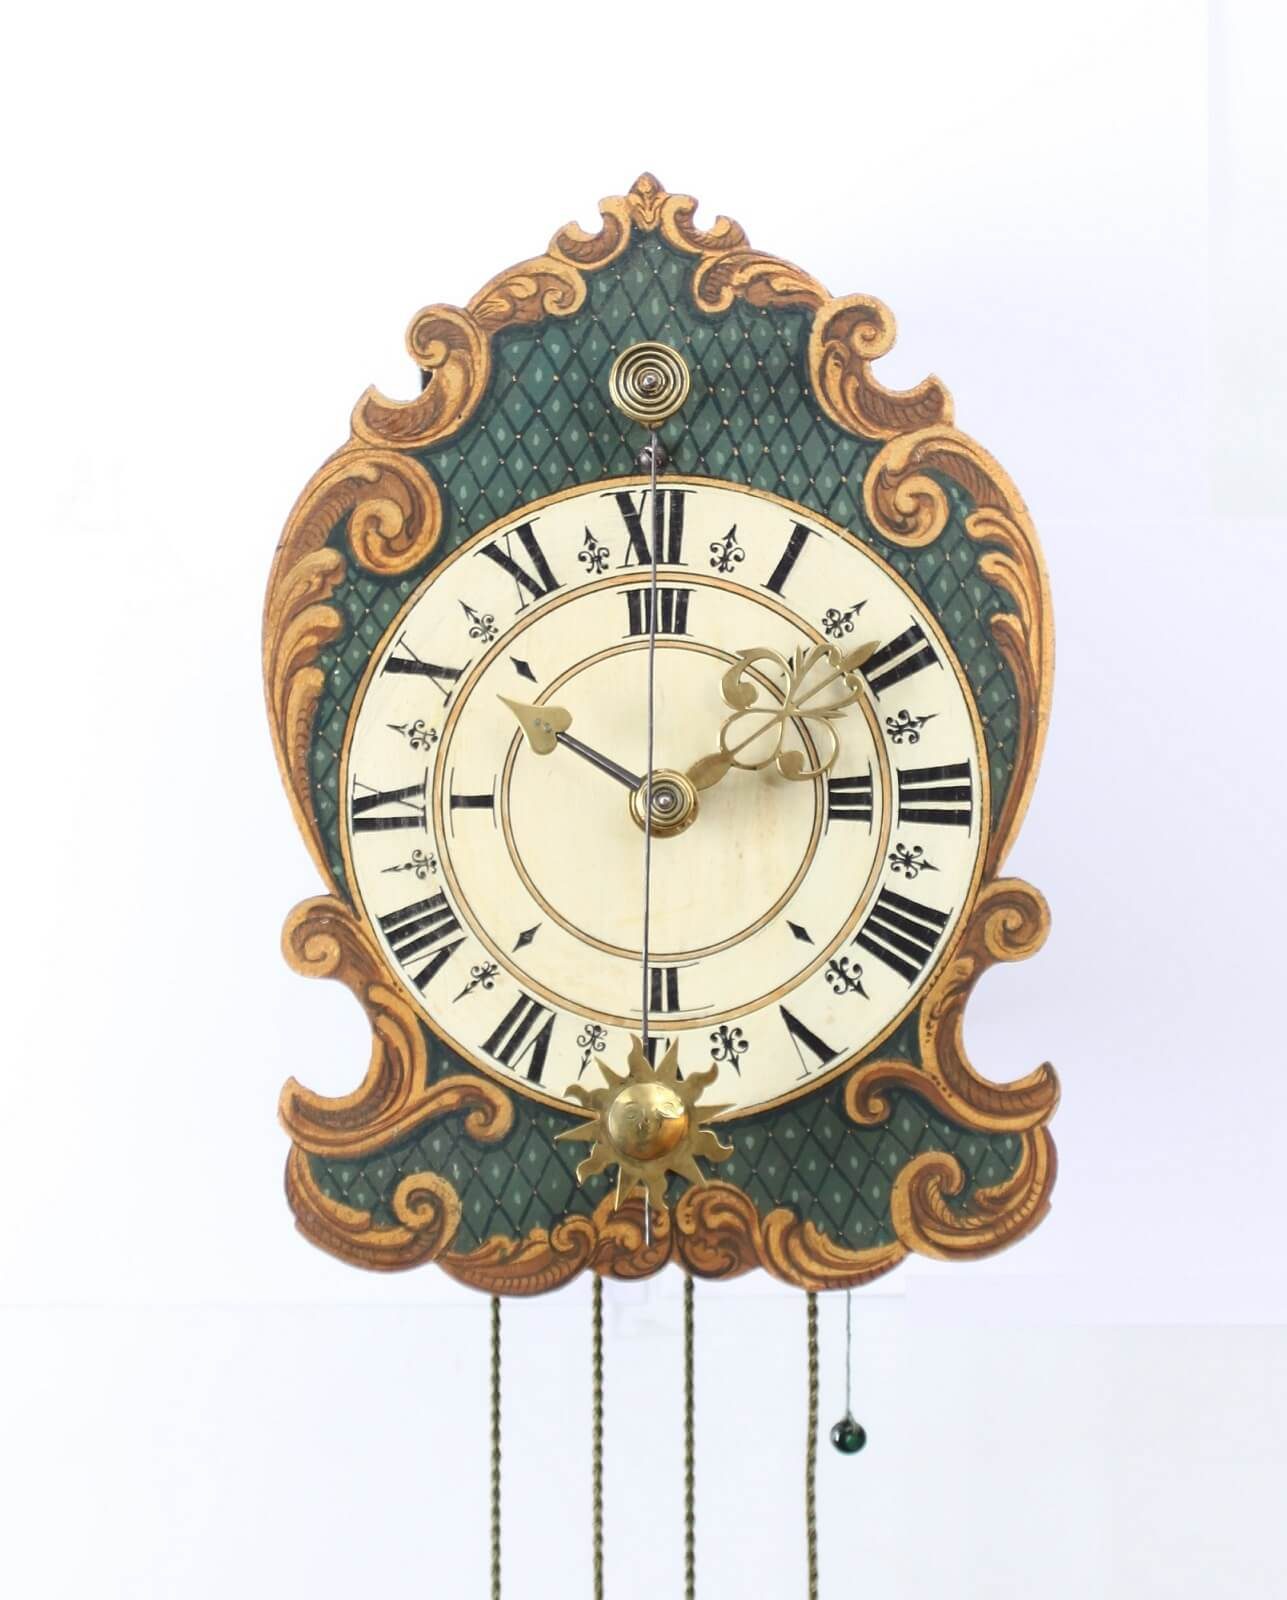 Swiss Polychrome Iron Wall Clock Zappler 1760